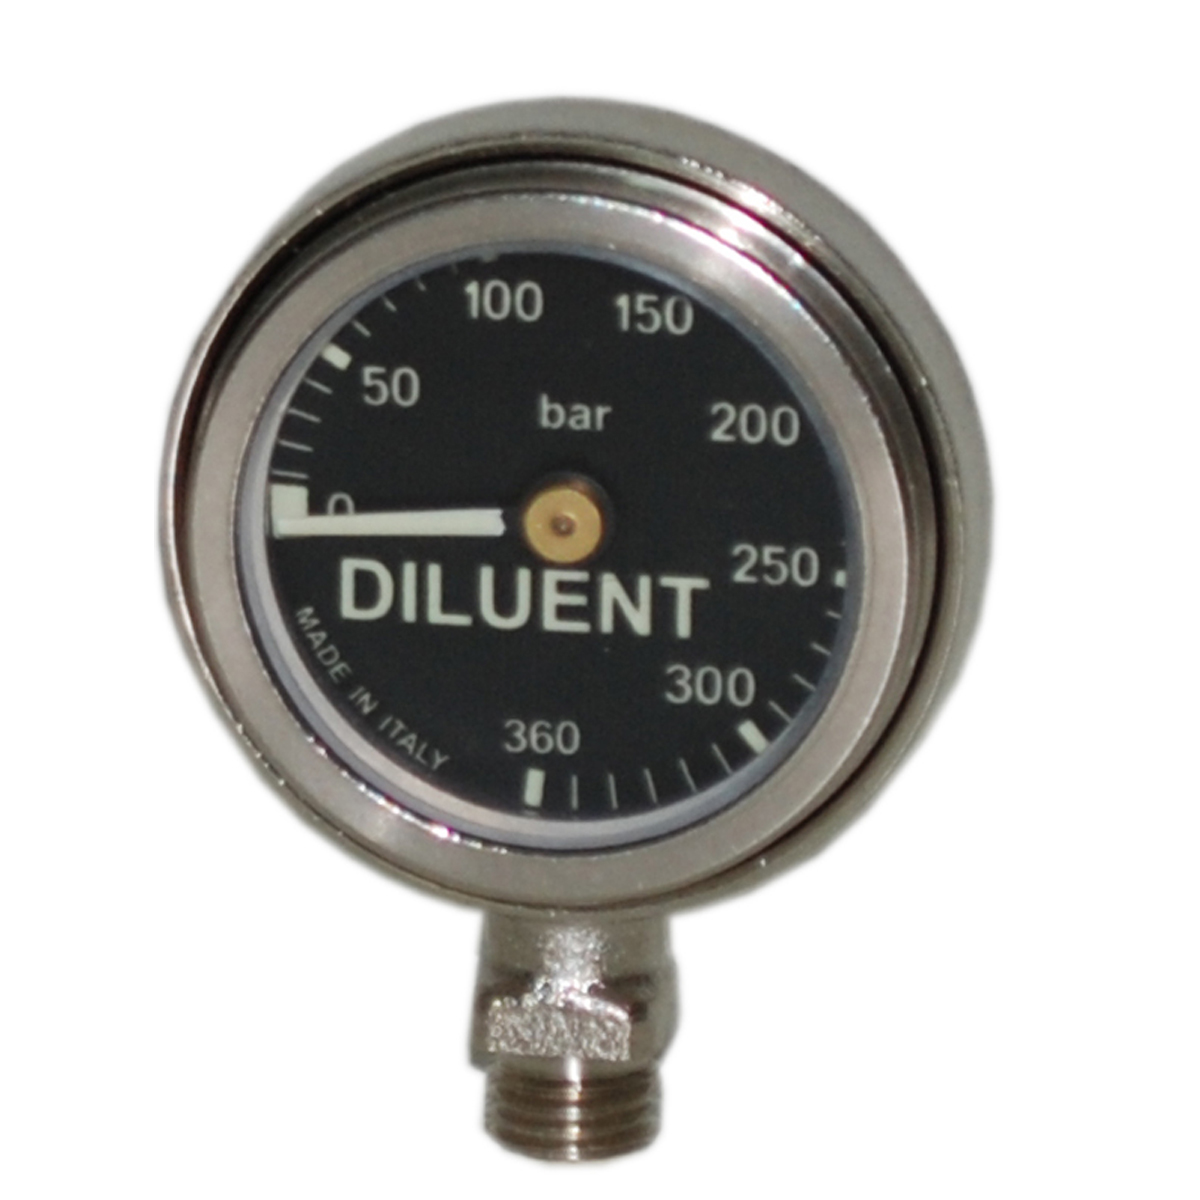 CCR Finimeter Diluent 50 mm